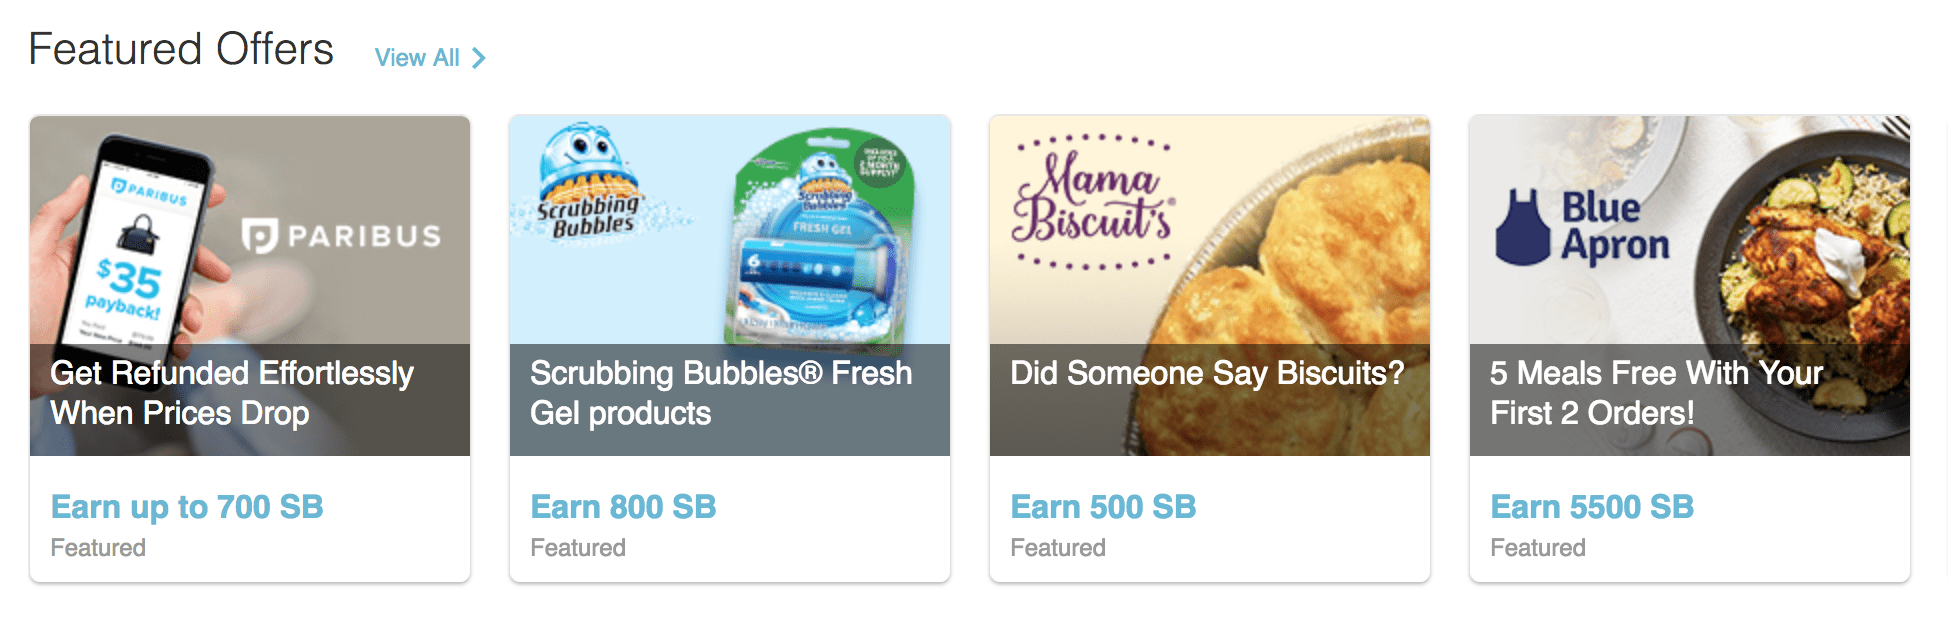 swagbucks featured offers